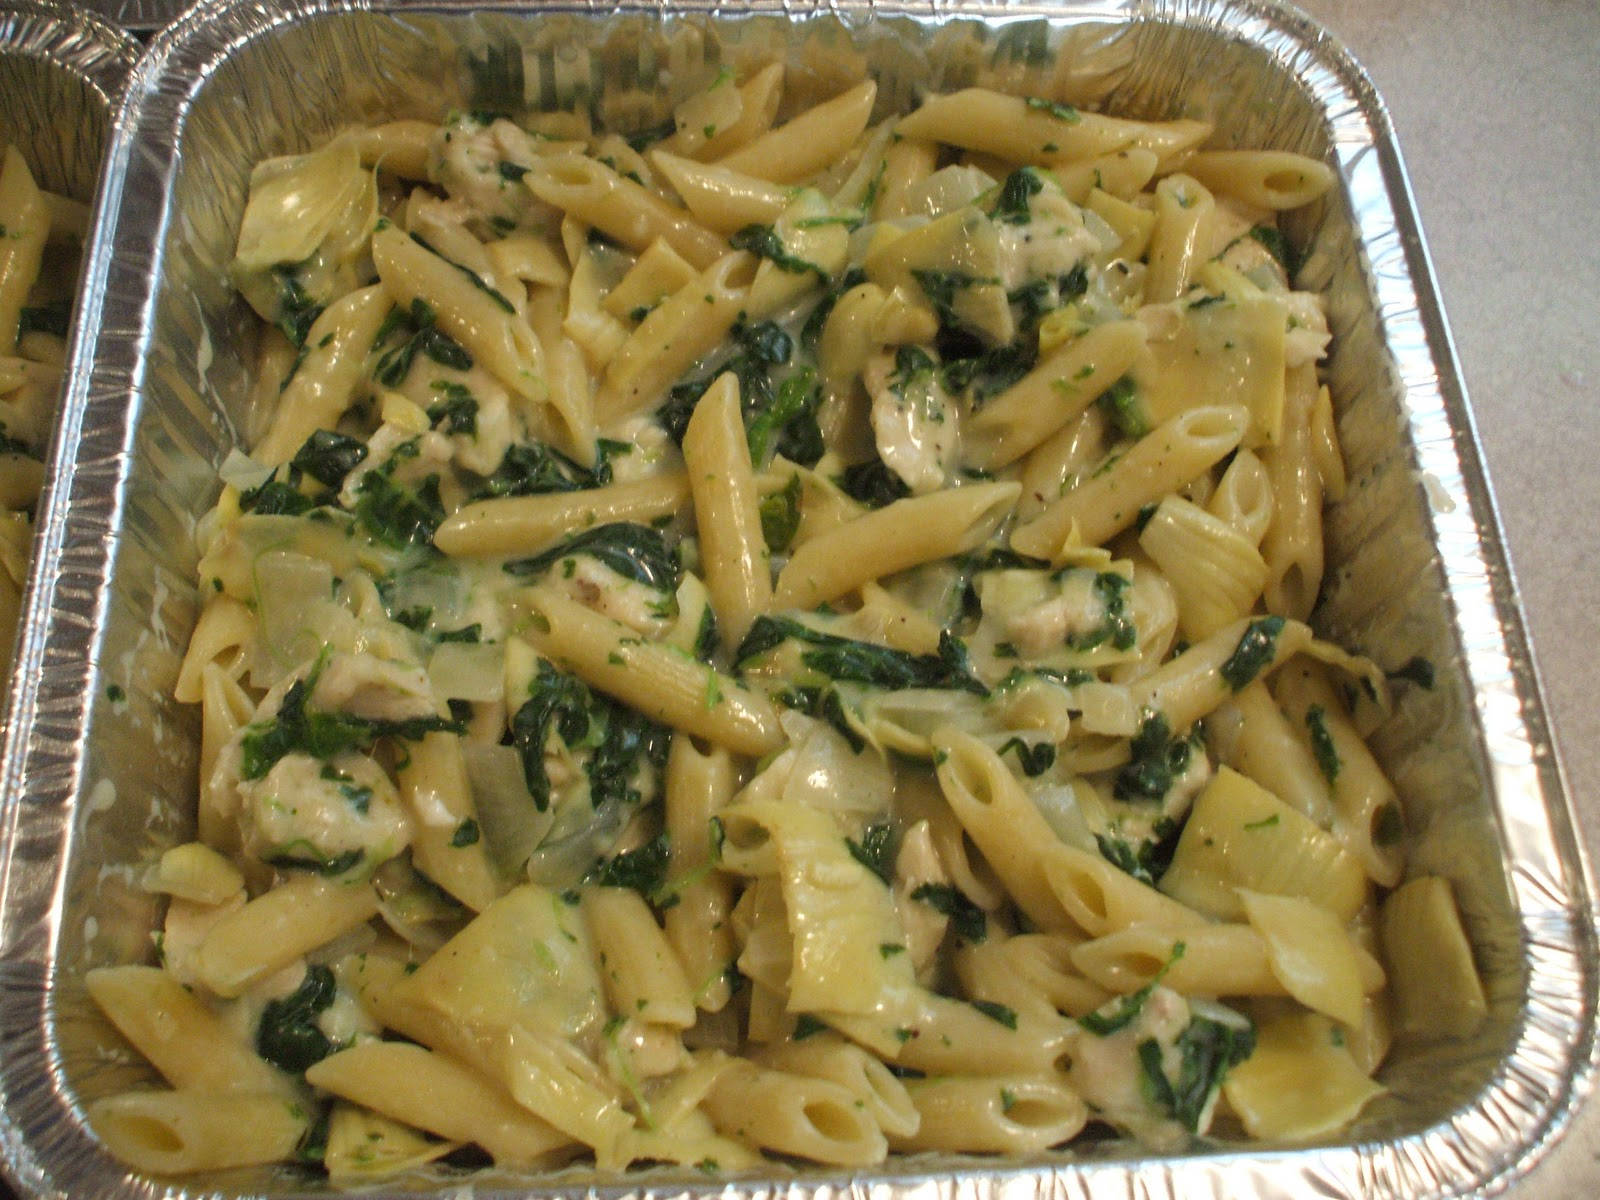 Keeza's Freezer Meals: Spinach, Artichoke and Chicken Pasta